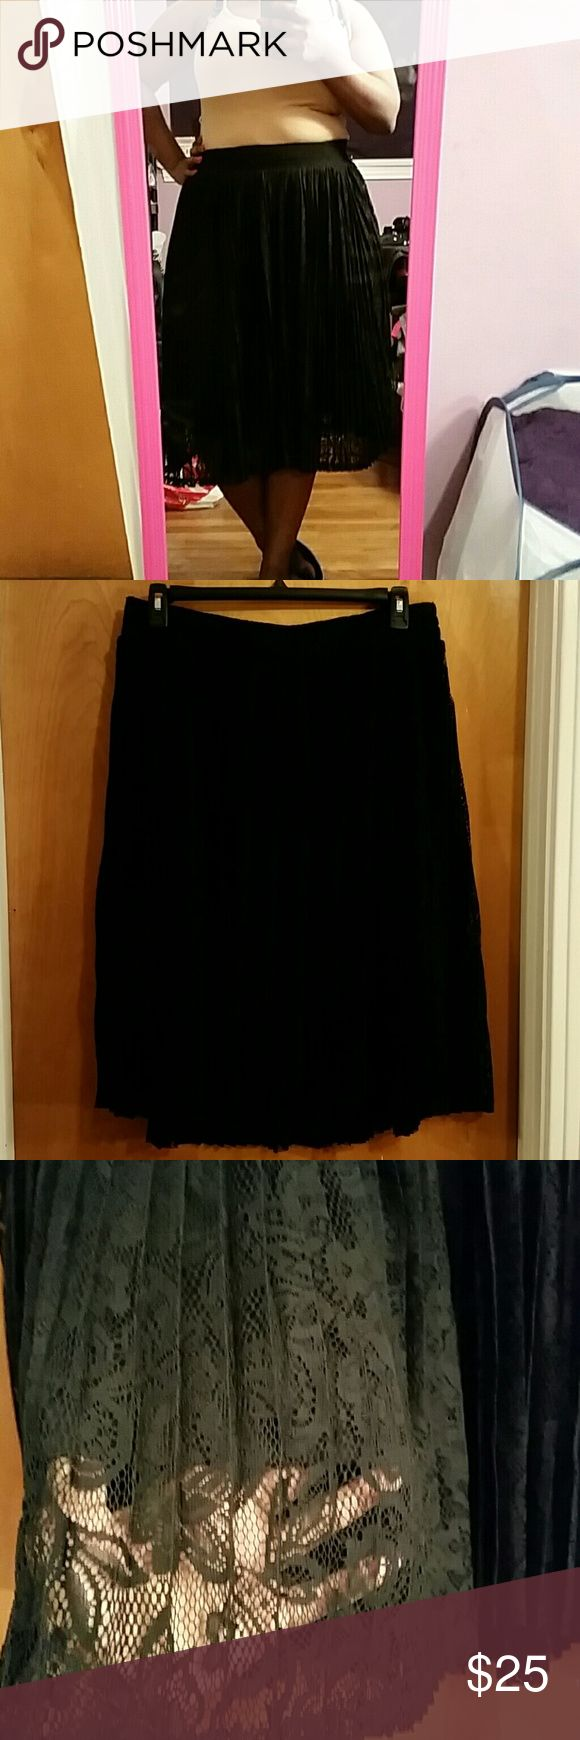 Black skater skirt Floral pattern lacy skater skirt. Flowy, and airy. Really pretty, simple with nice detail. Brand new only tried on twice. torrid Skirts Circle & Skater